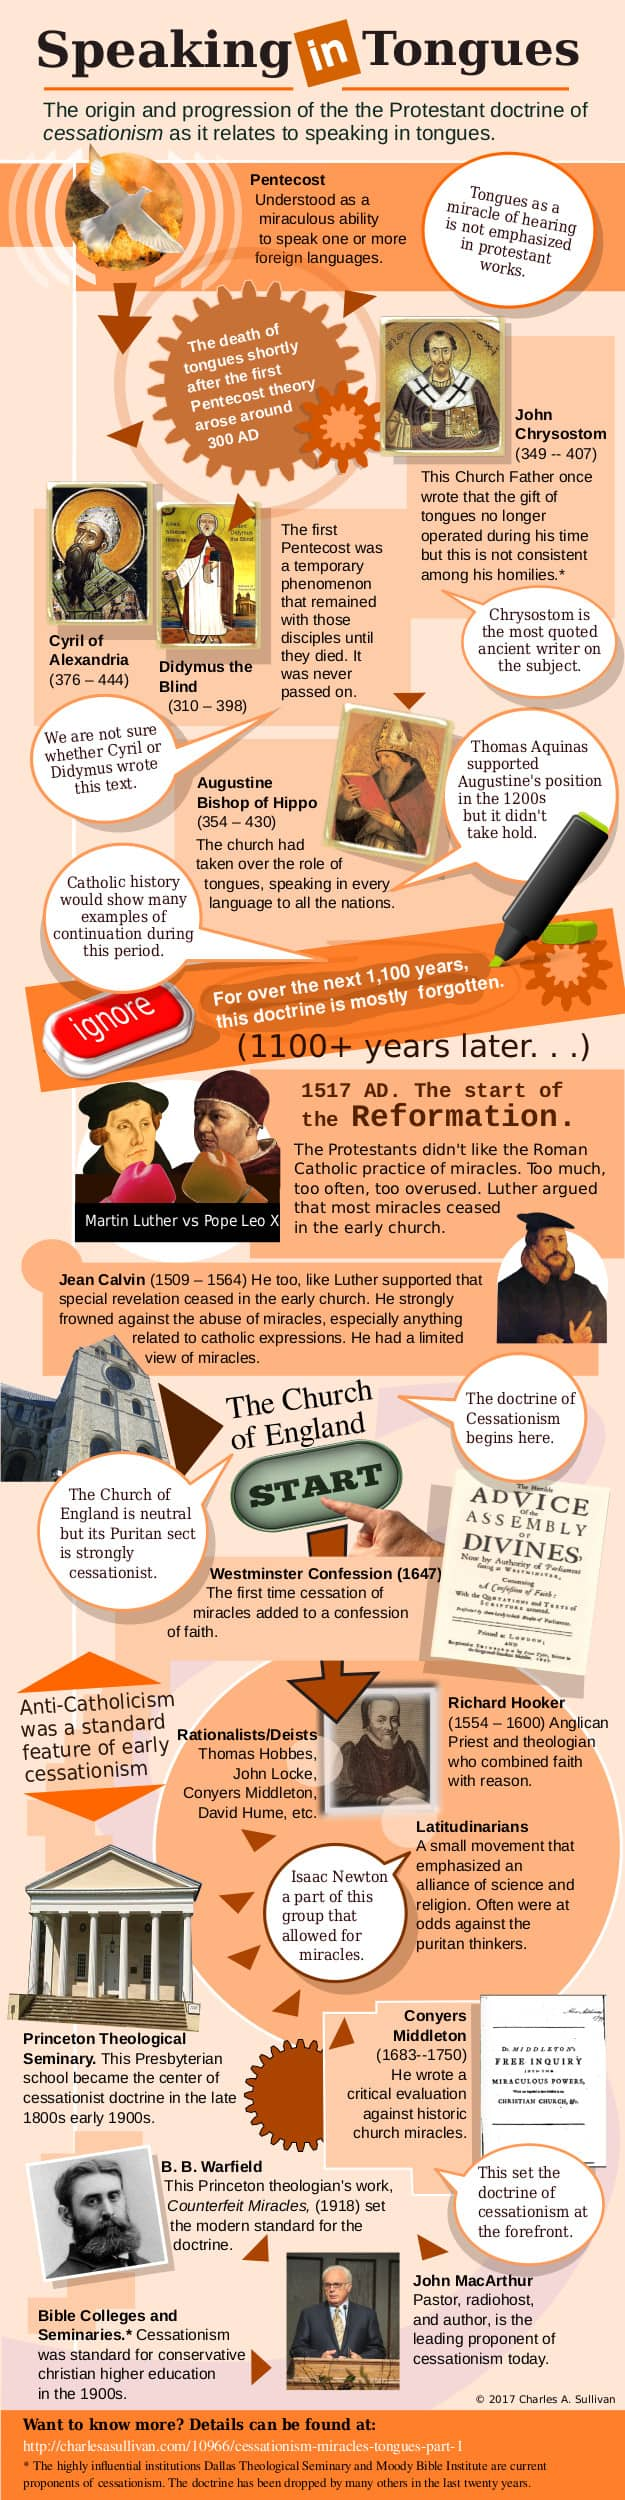 Infographic on the doctrine of cessationism from origins until today